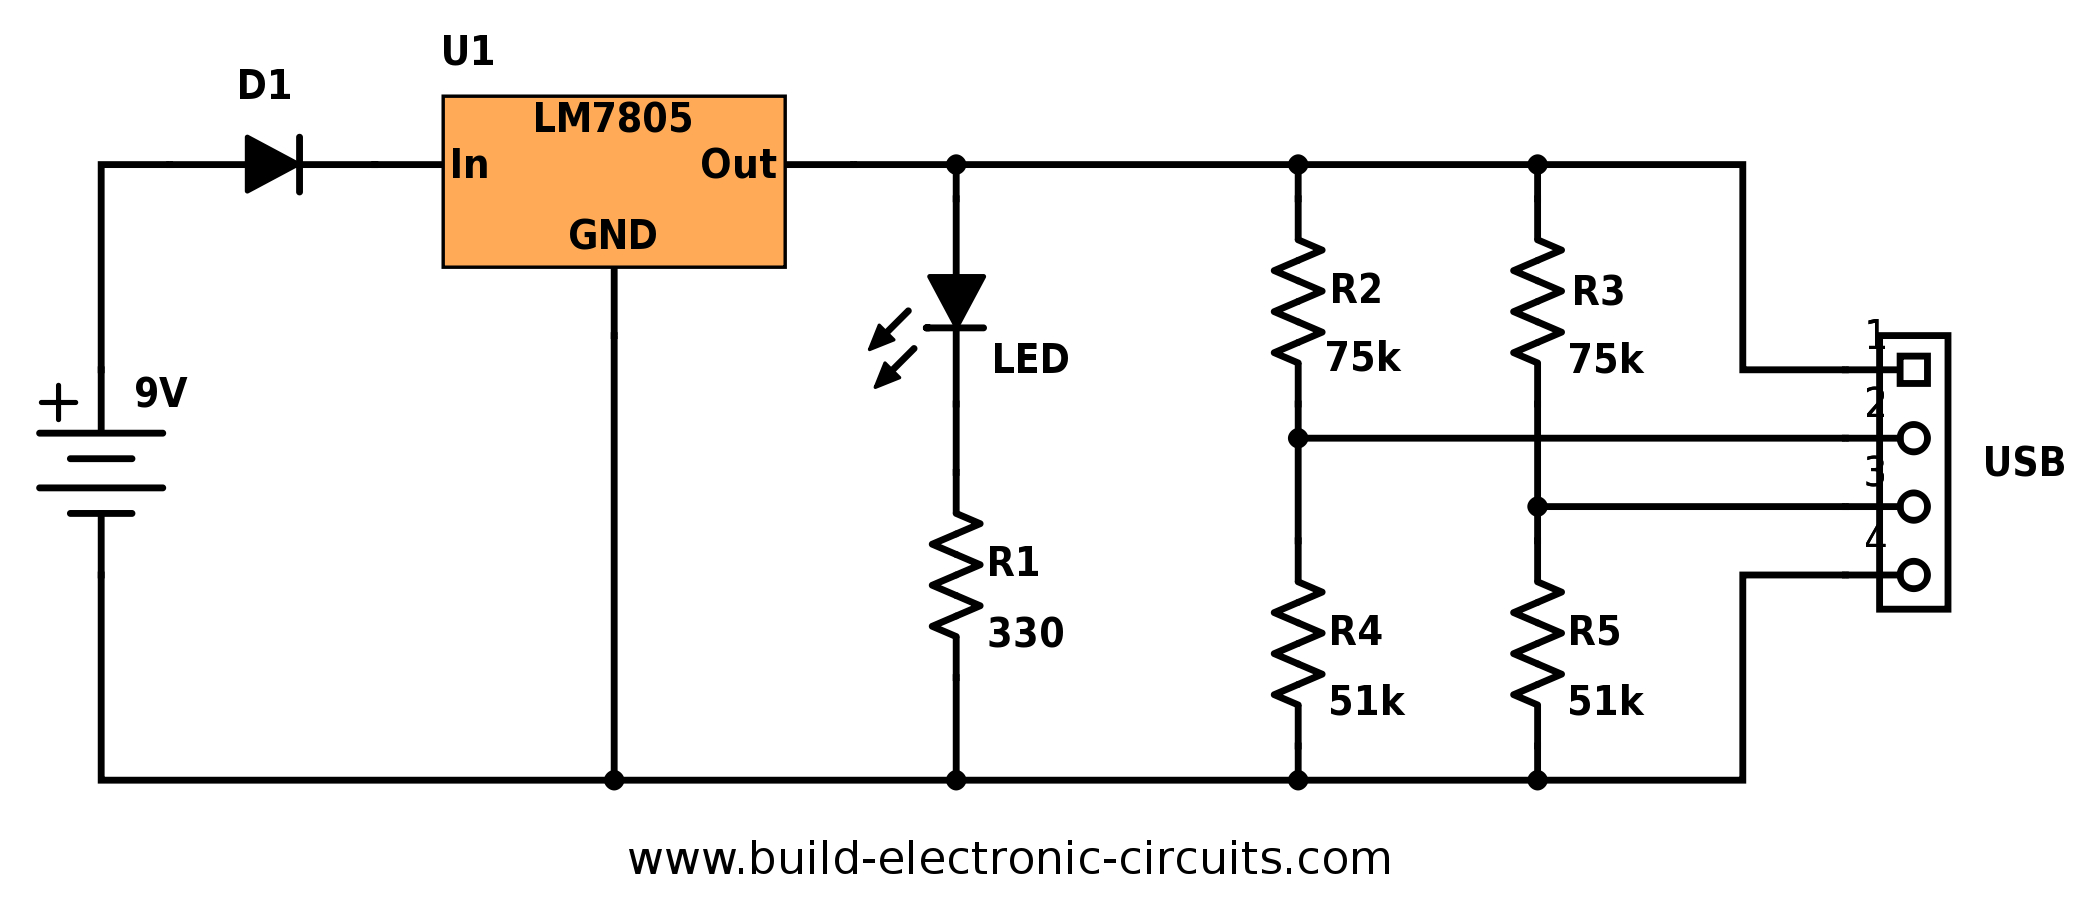 Portable Usb Charger Circuit - Build Electronic Circuits - Micro B Usb Wiring Diagram For Car Charger